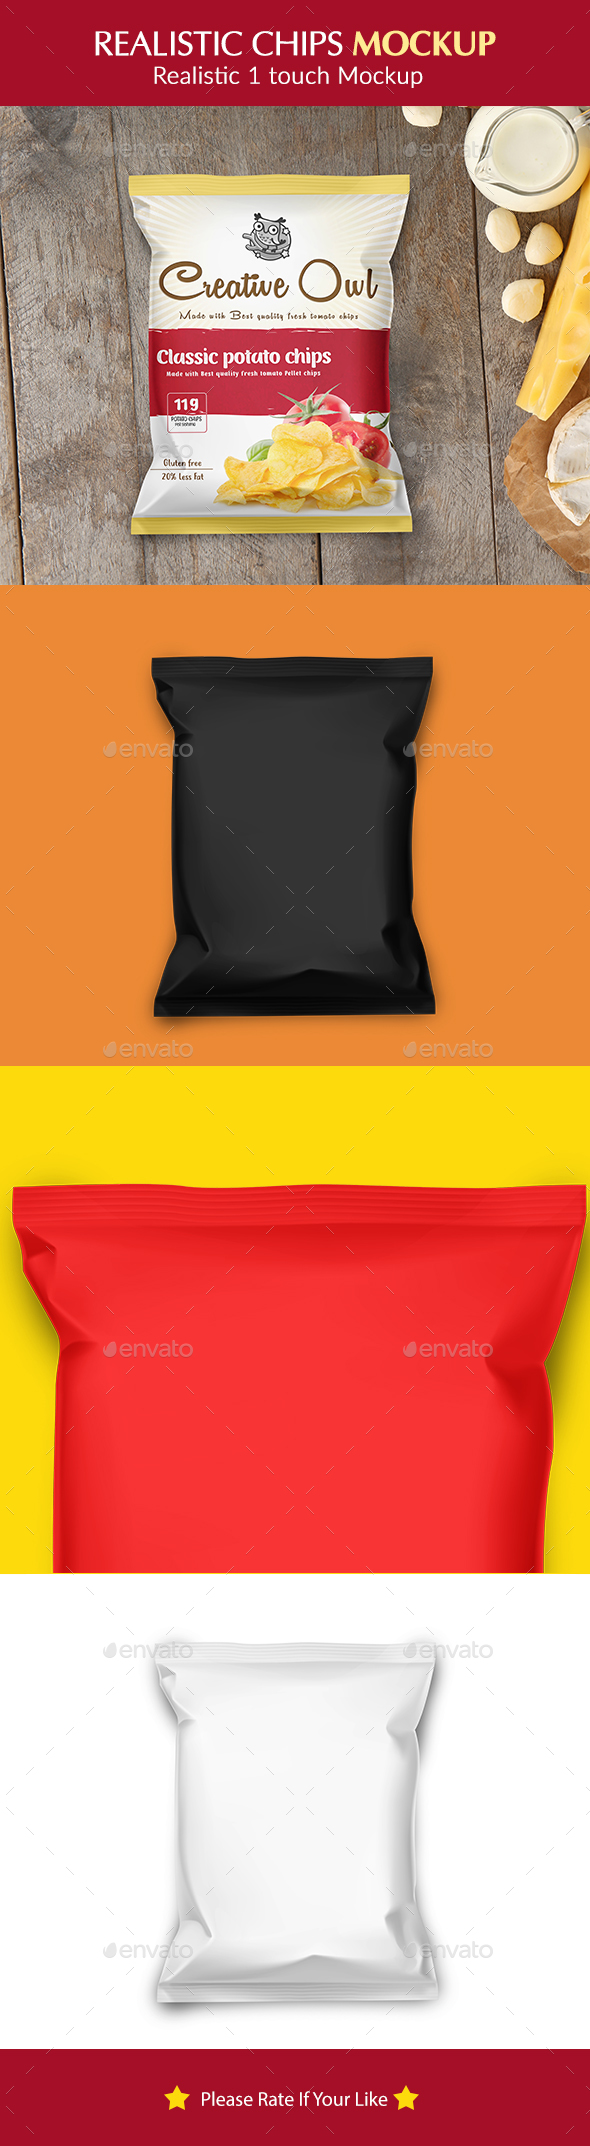 Chips, Snack and Pouch Packet Mockup - Food and Drink Packaging